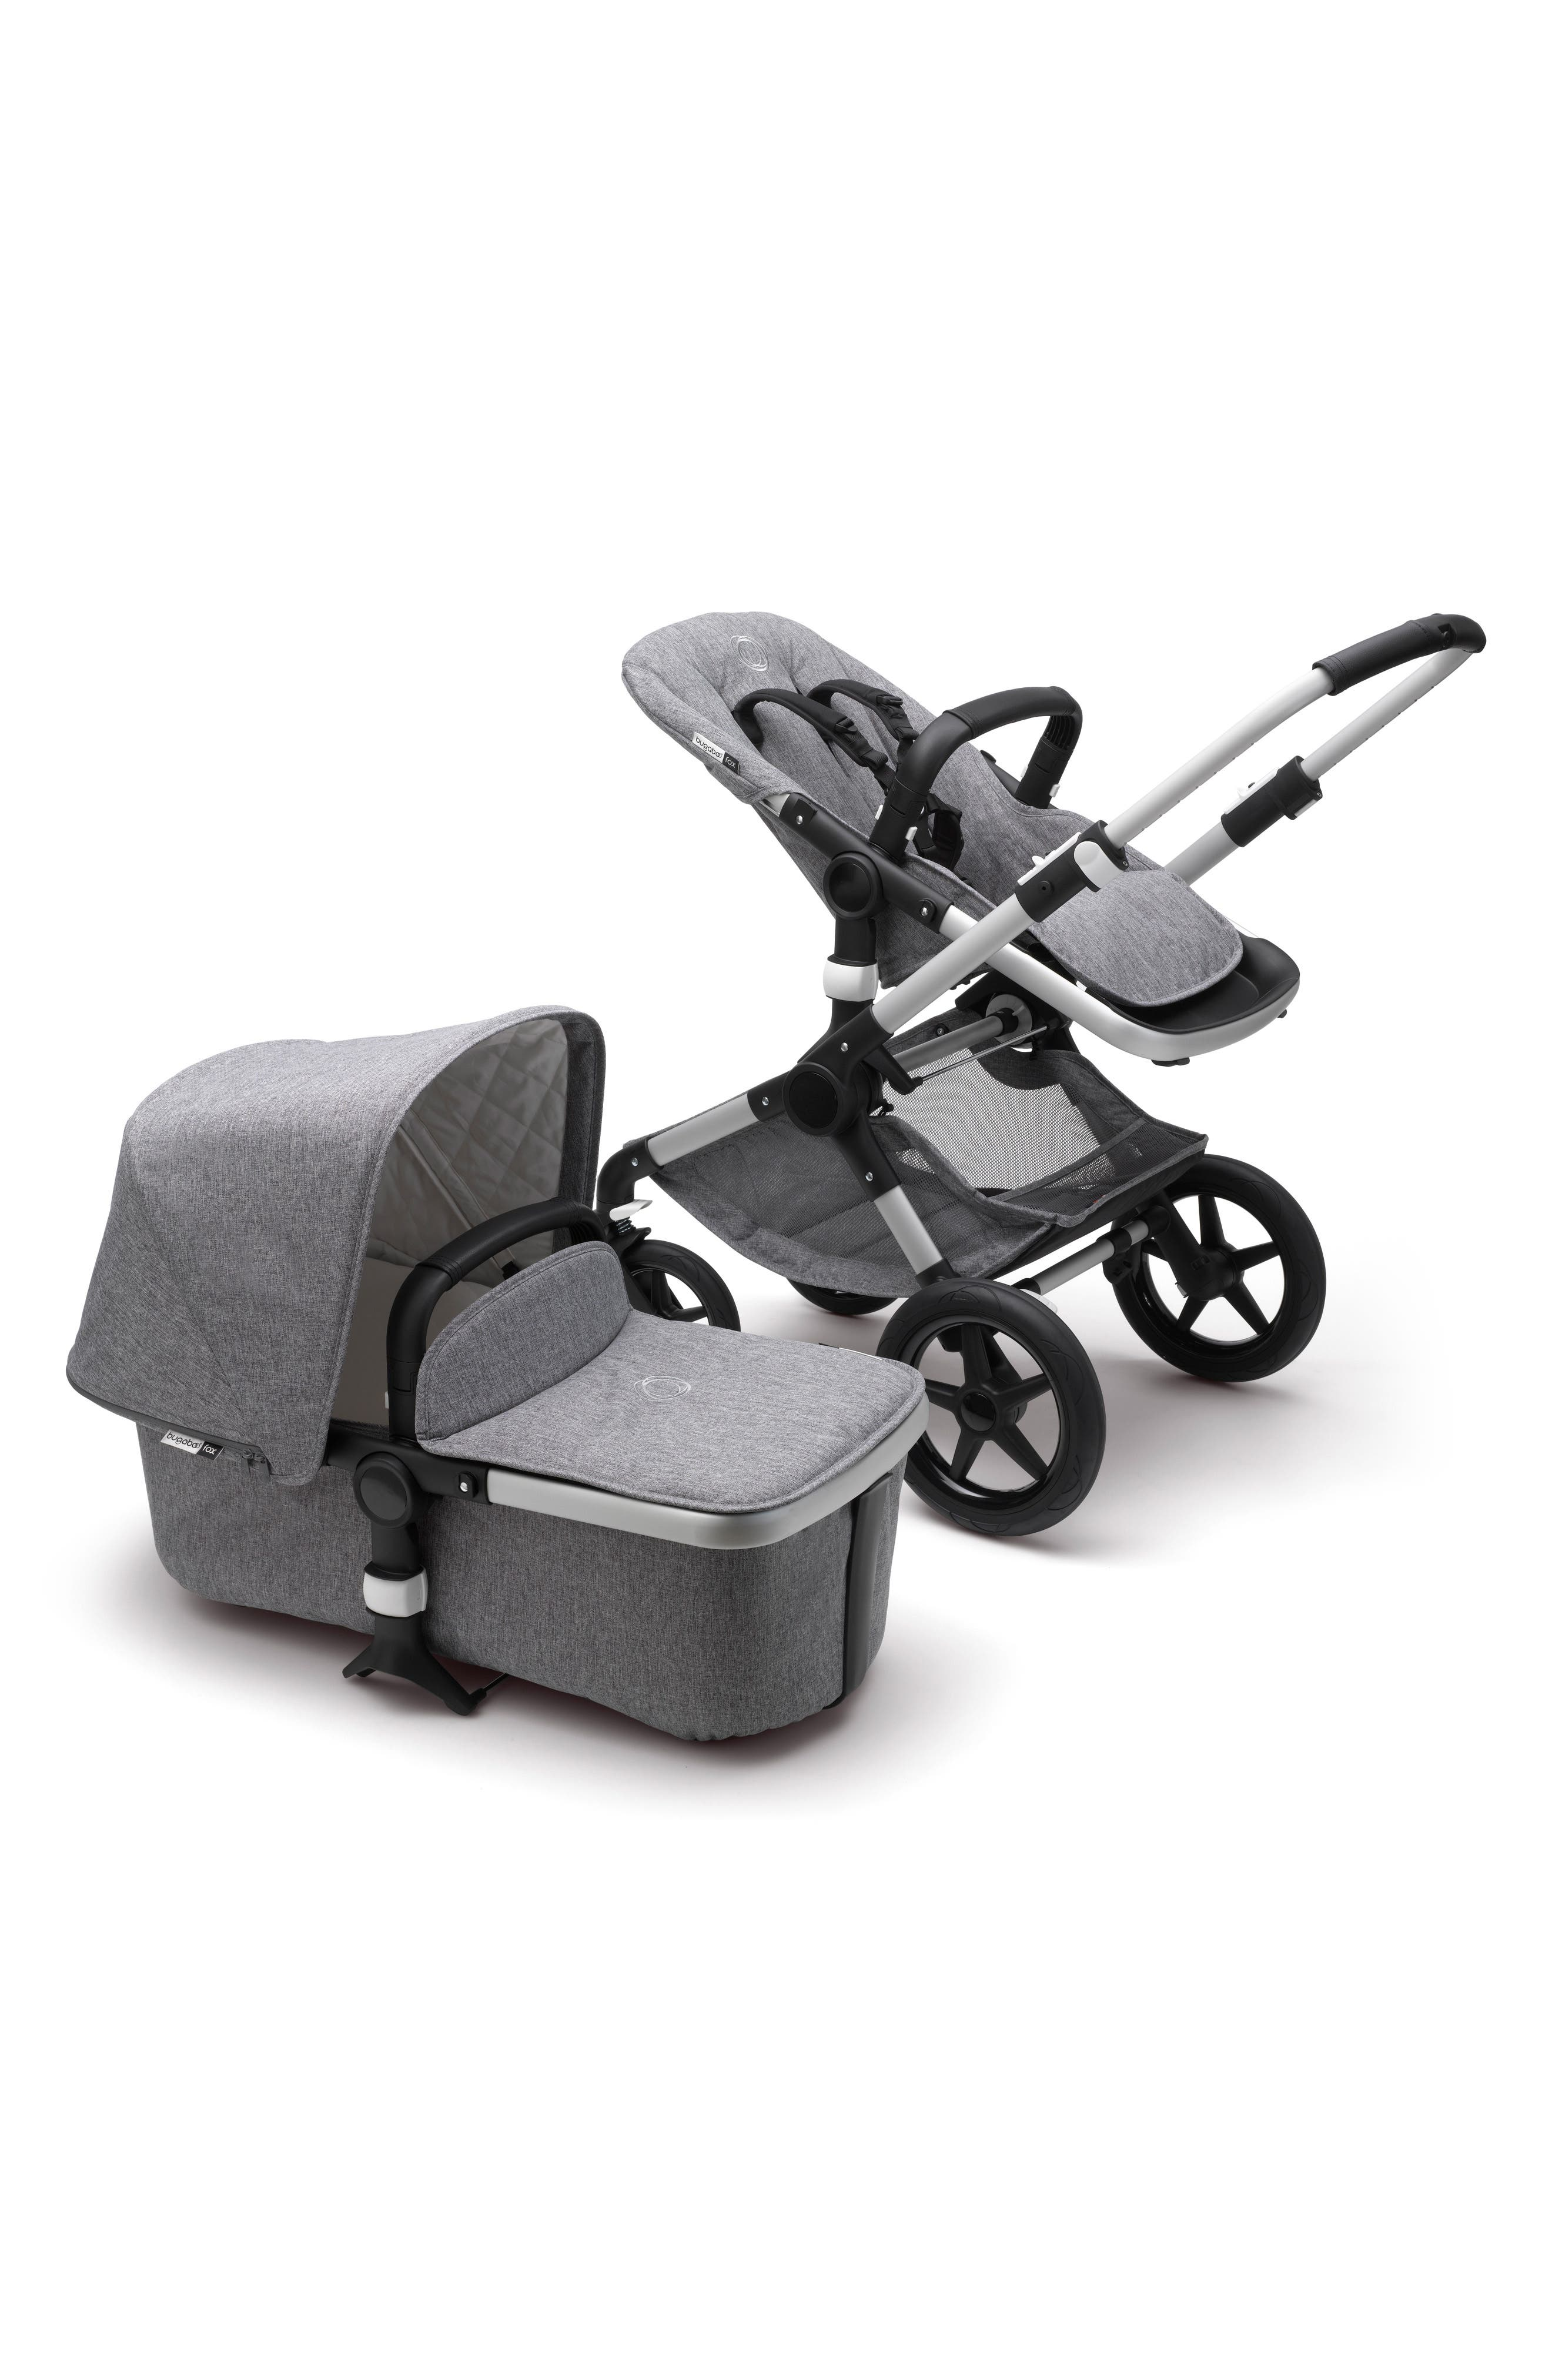 Fox Classic Complete Stroller with Bassinet,                         Main,                         color, GREY MELANGE/ ALUMINUM